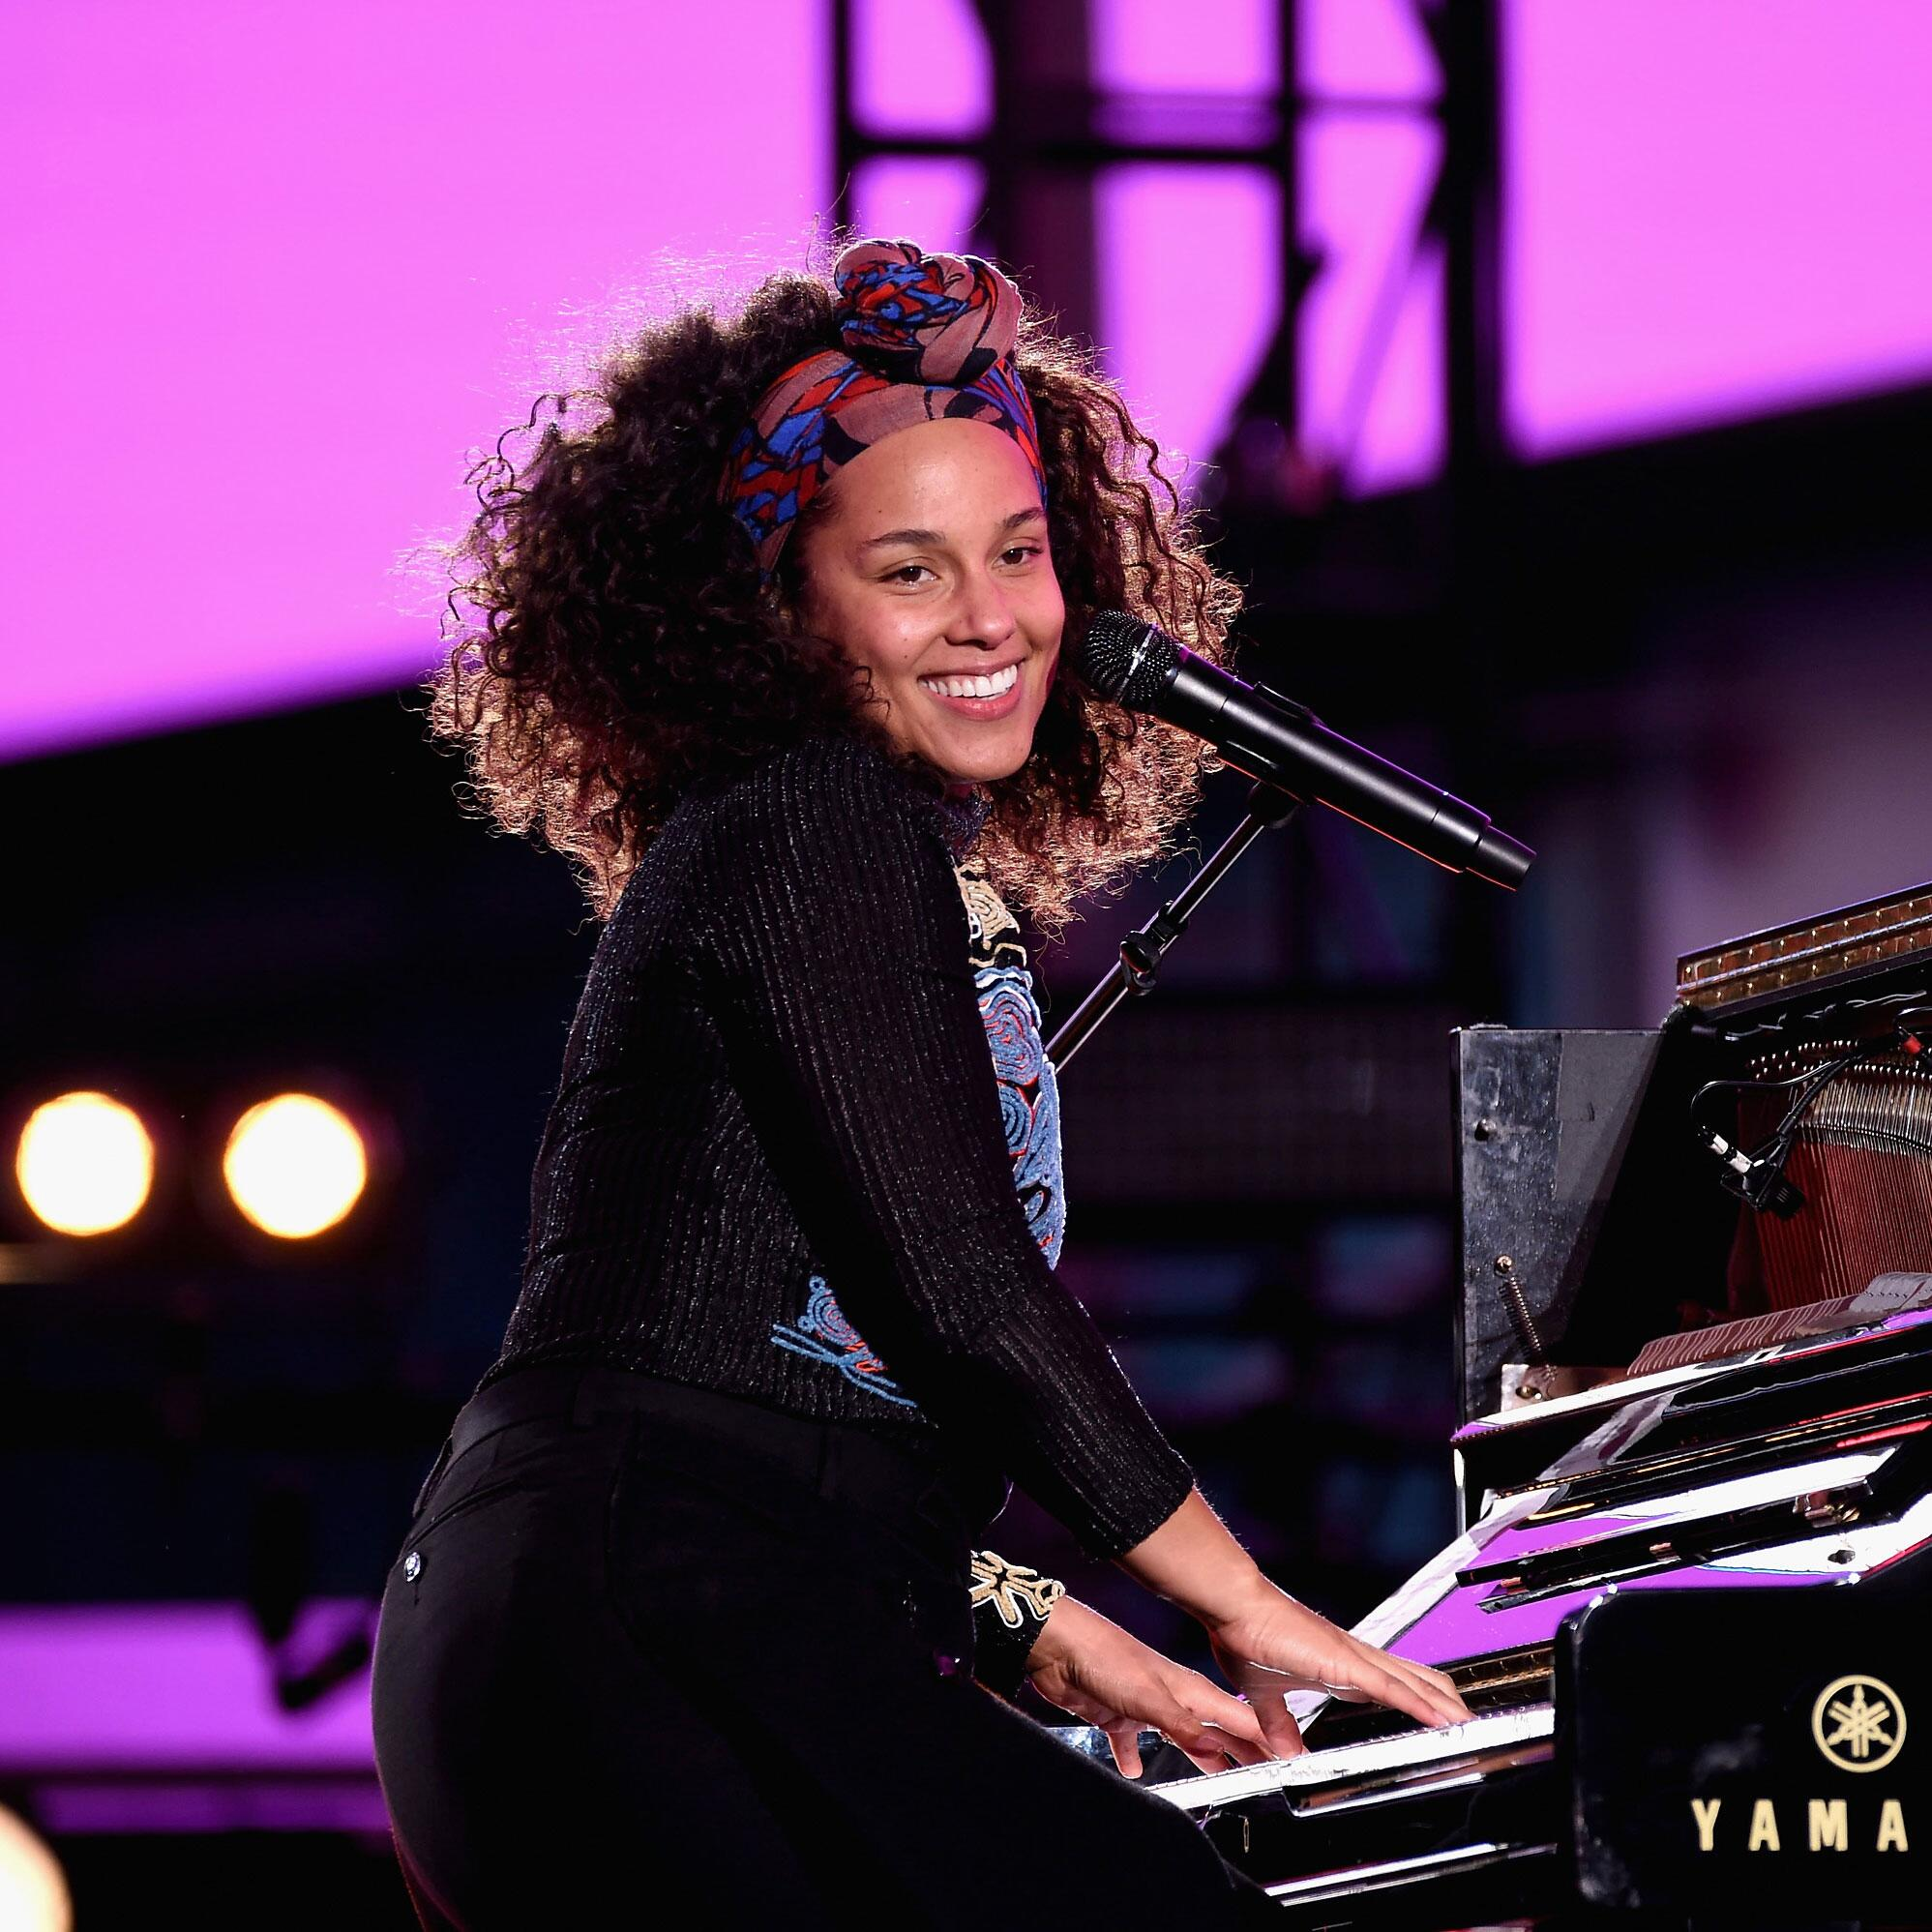 Alicia Keys Portrait of her playing piano